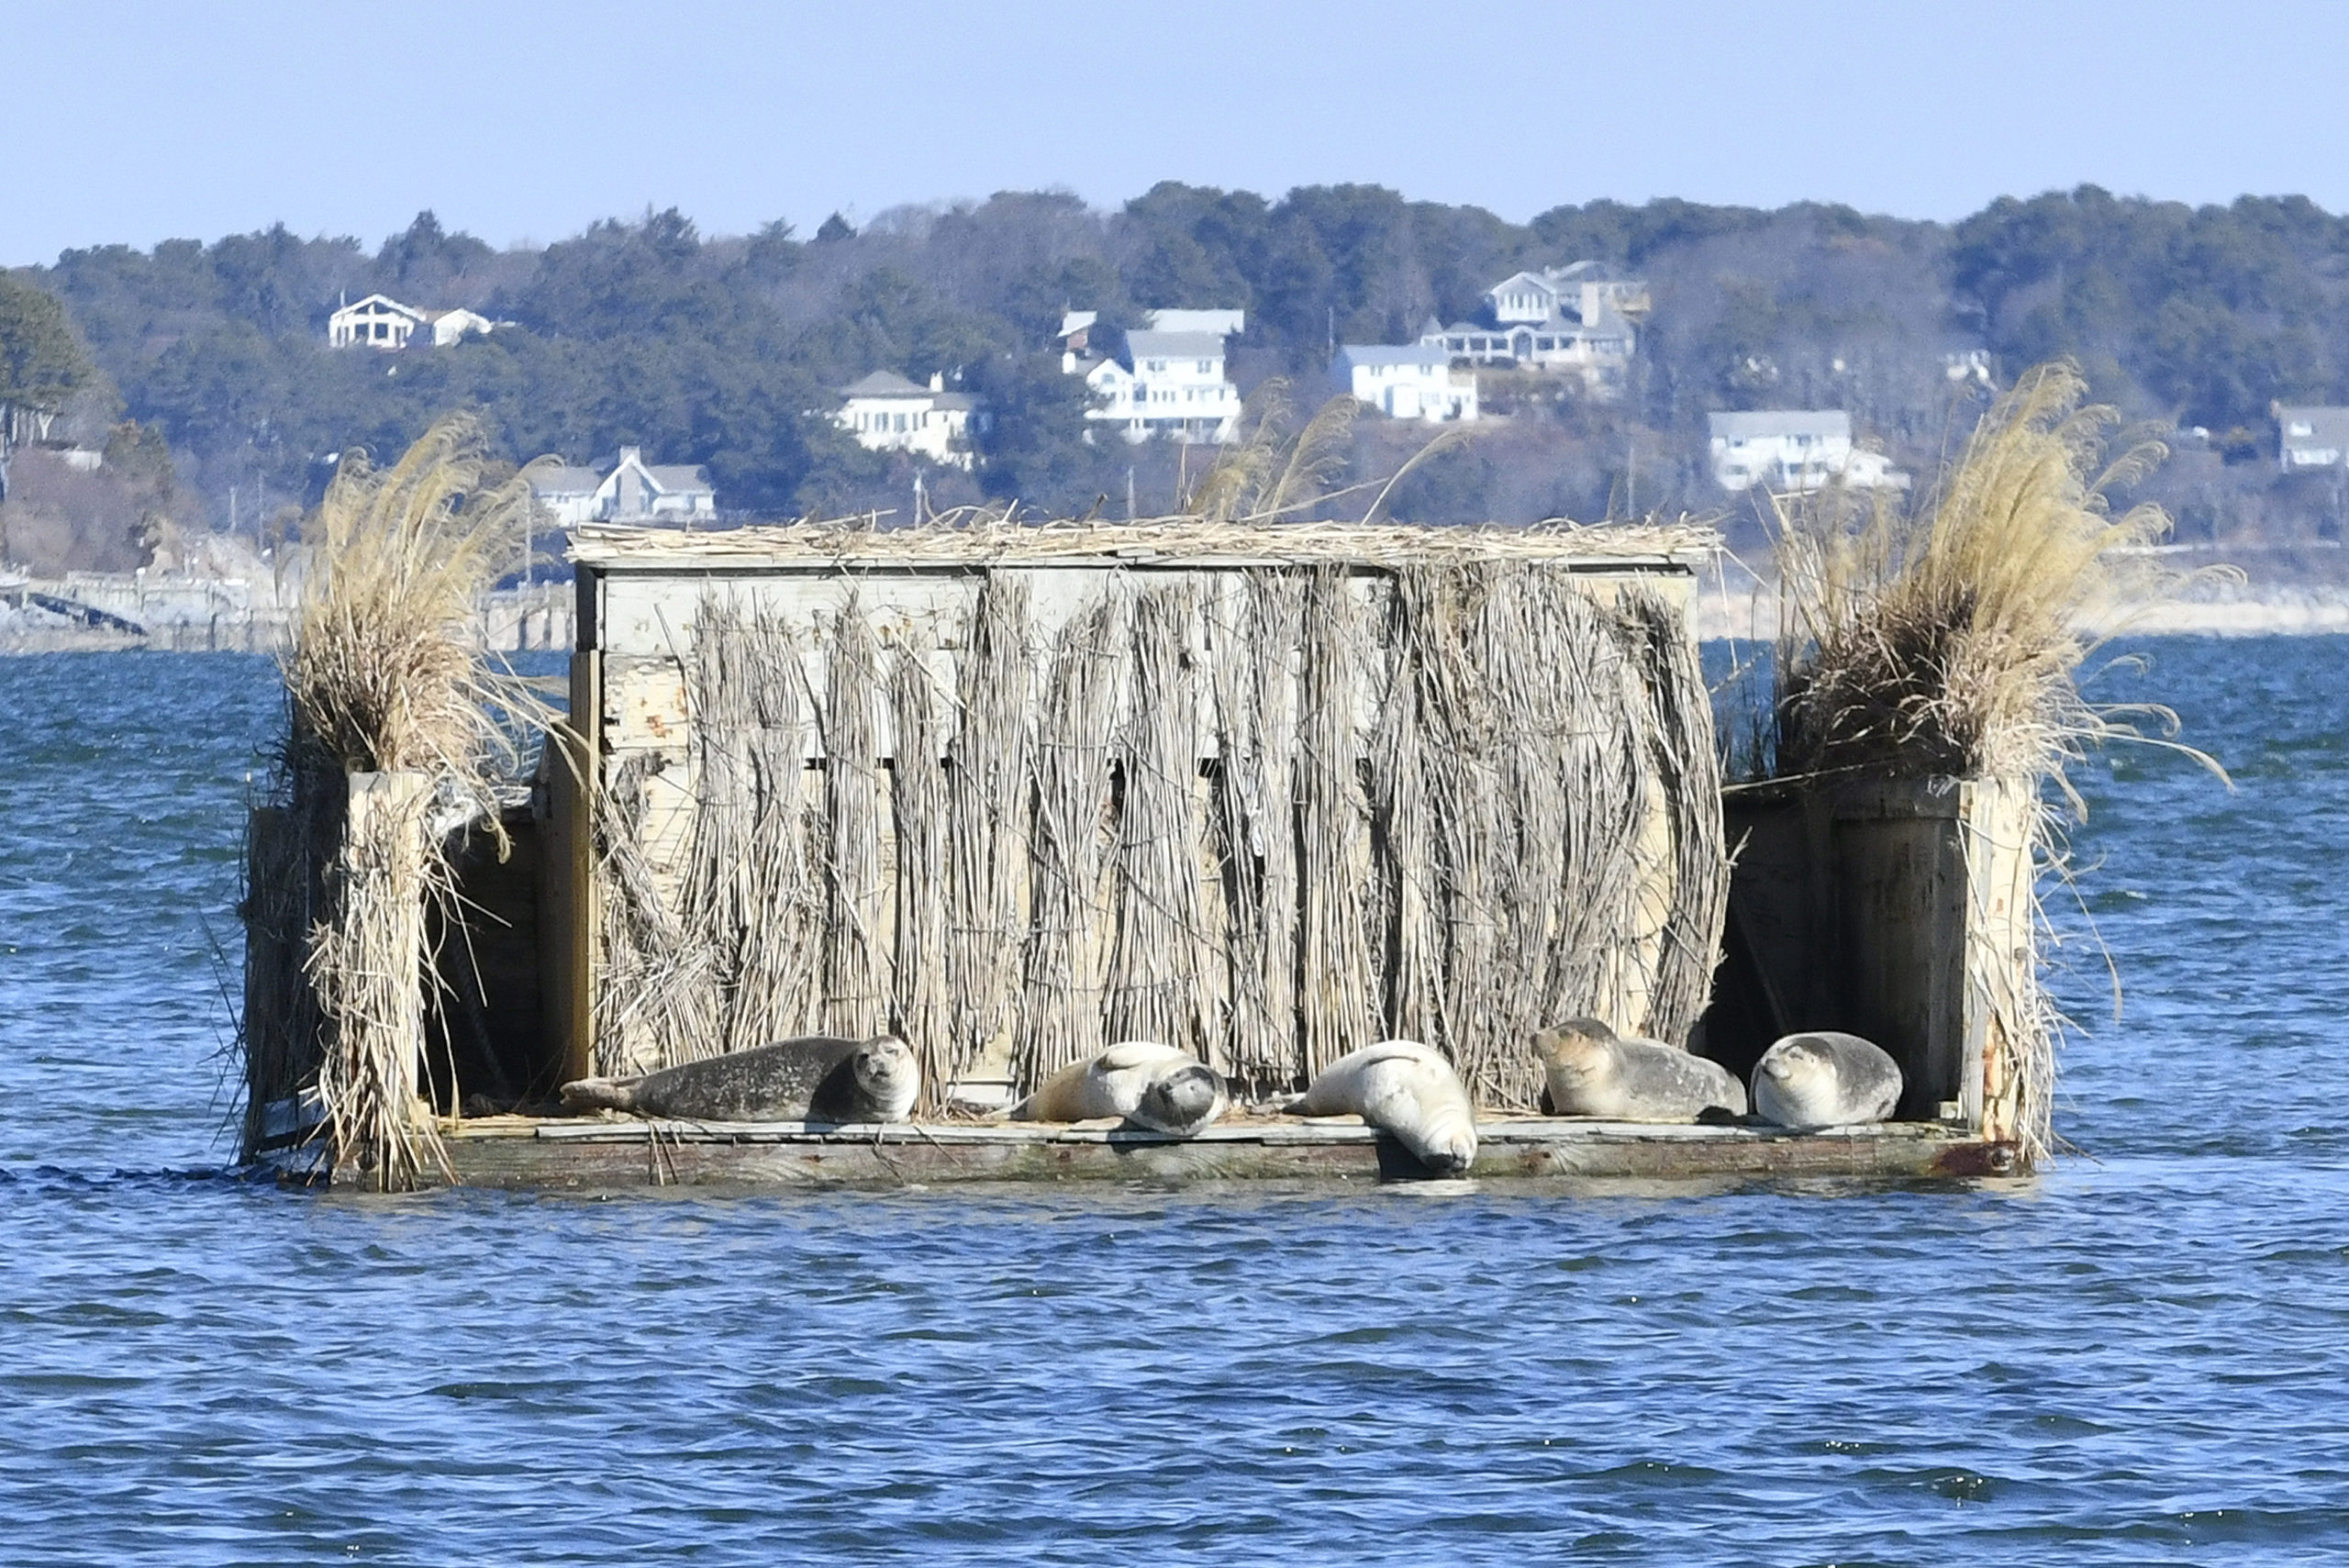 The Sunny Side Of The Blind February 28 -- Harbor seals take advantage of a sunny day by basking on a duck blind in Shinnecock Bay in Hampton Bays.